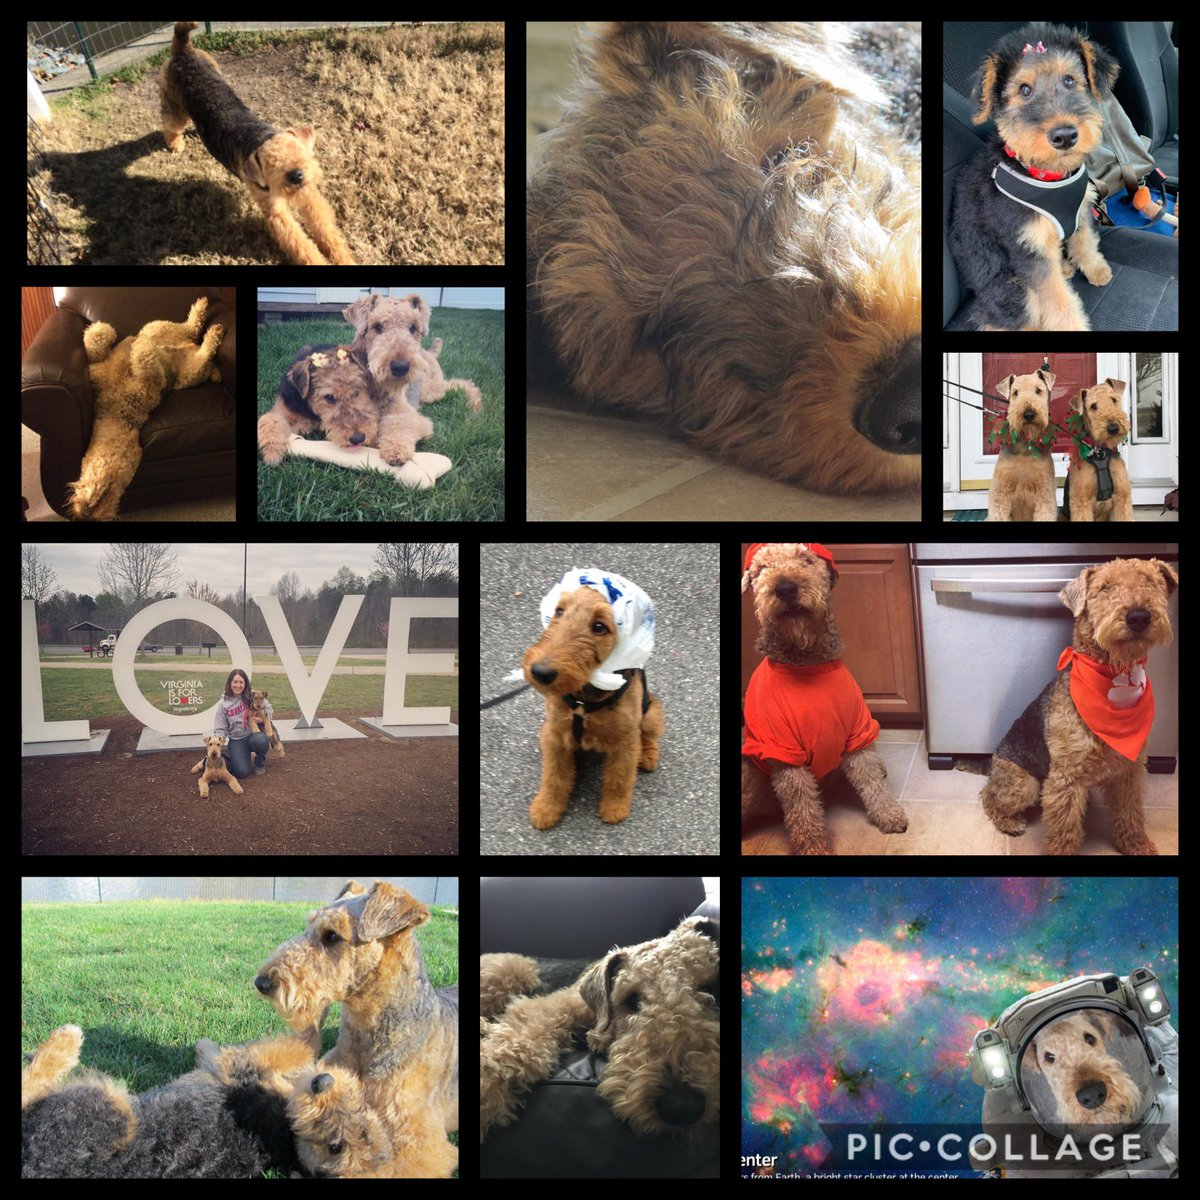 Here are my LOVES! Day 2 of Virtual Spirit Week: Pet Day. #Silas #Phoebe #Terriers #KHSlive 💛🖤